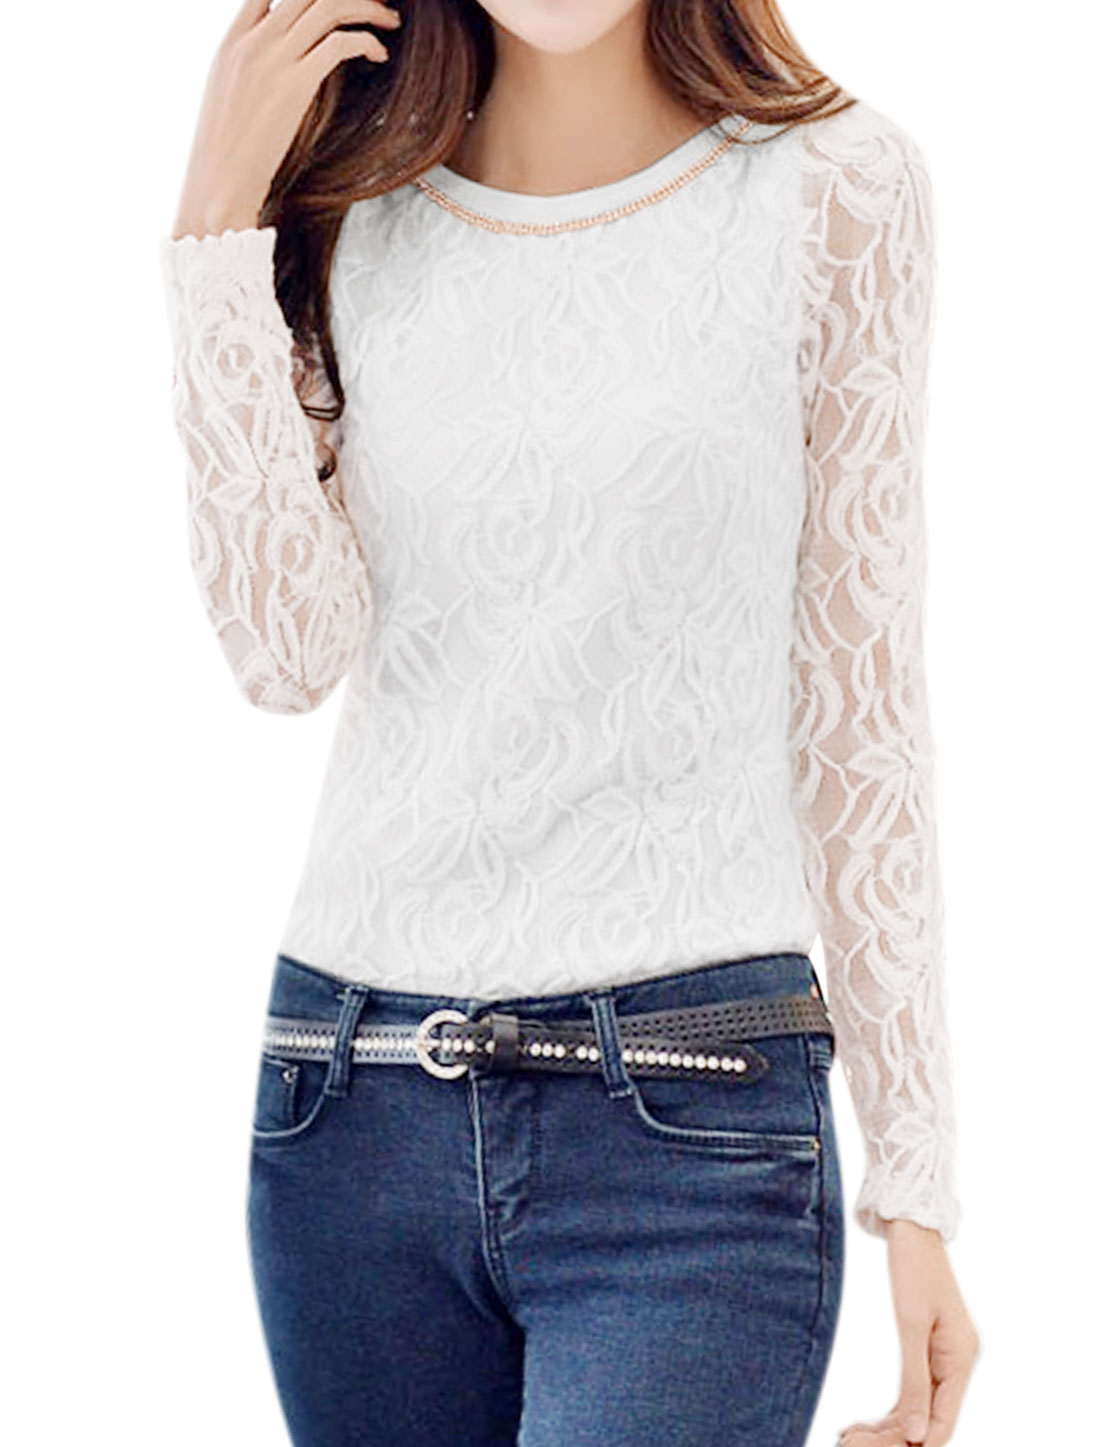 Ladies Long Sleeve Round Neck Fully Lined Casual Lace T-Shirt White XS